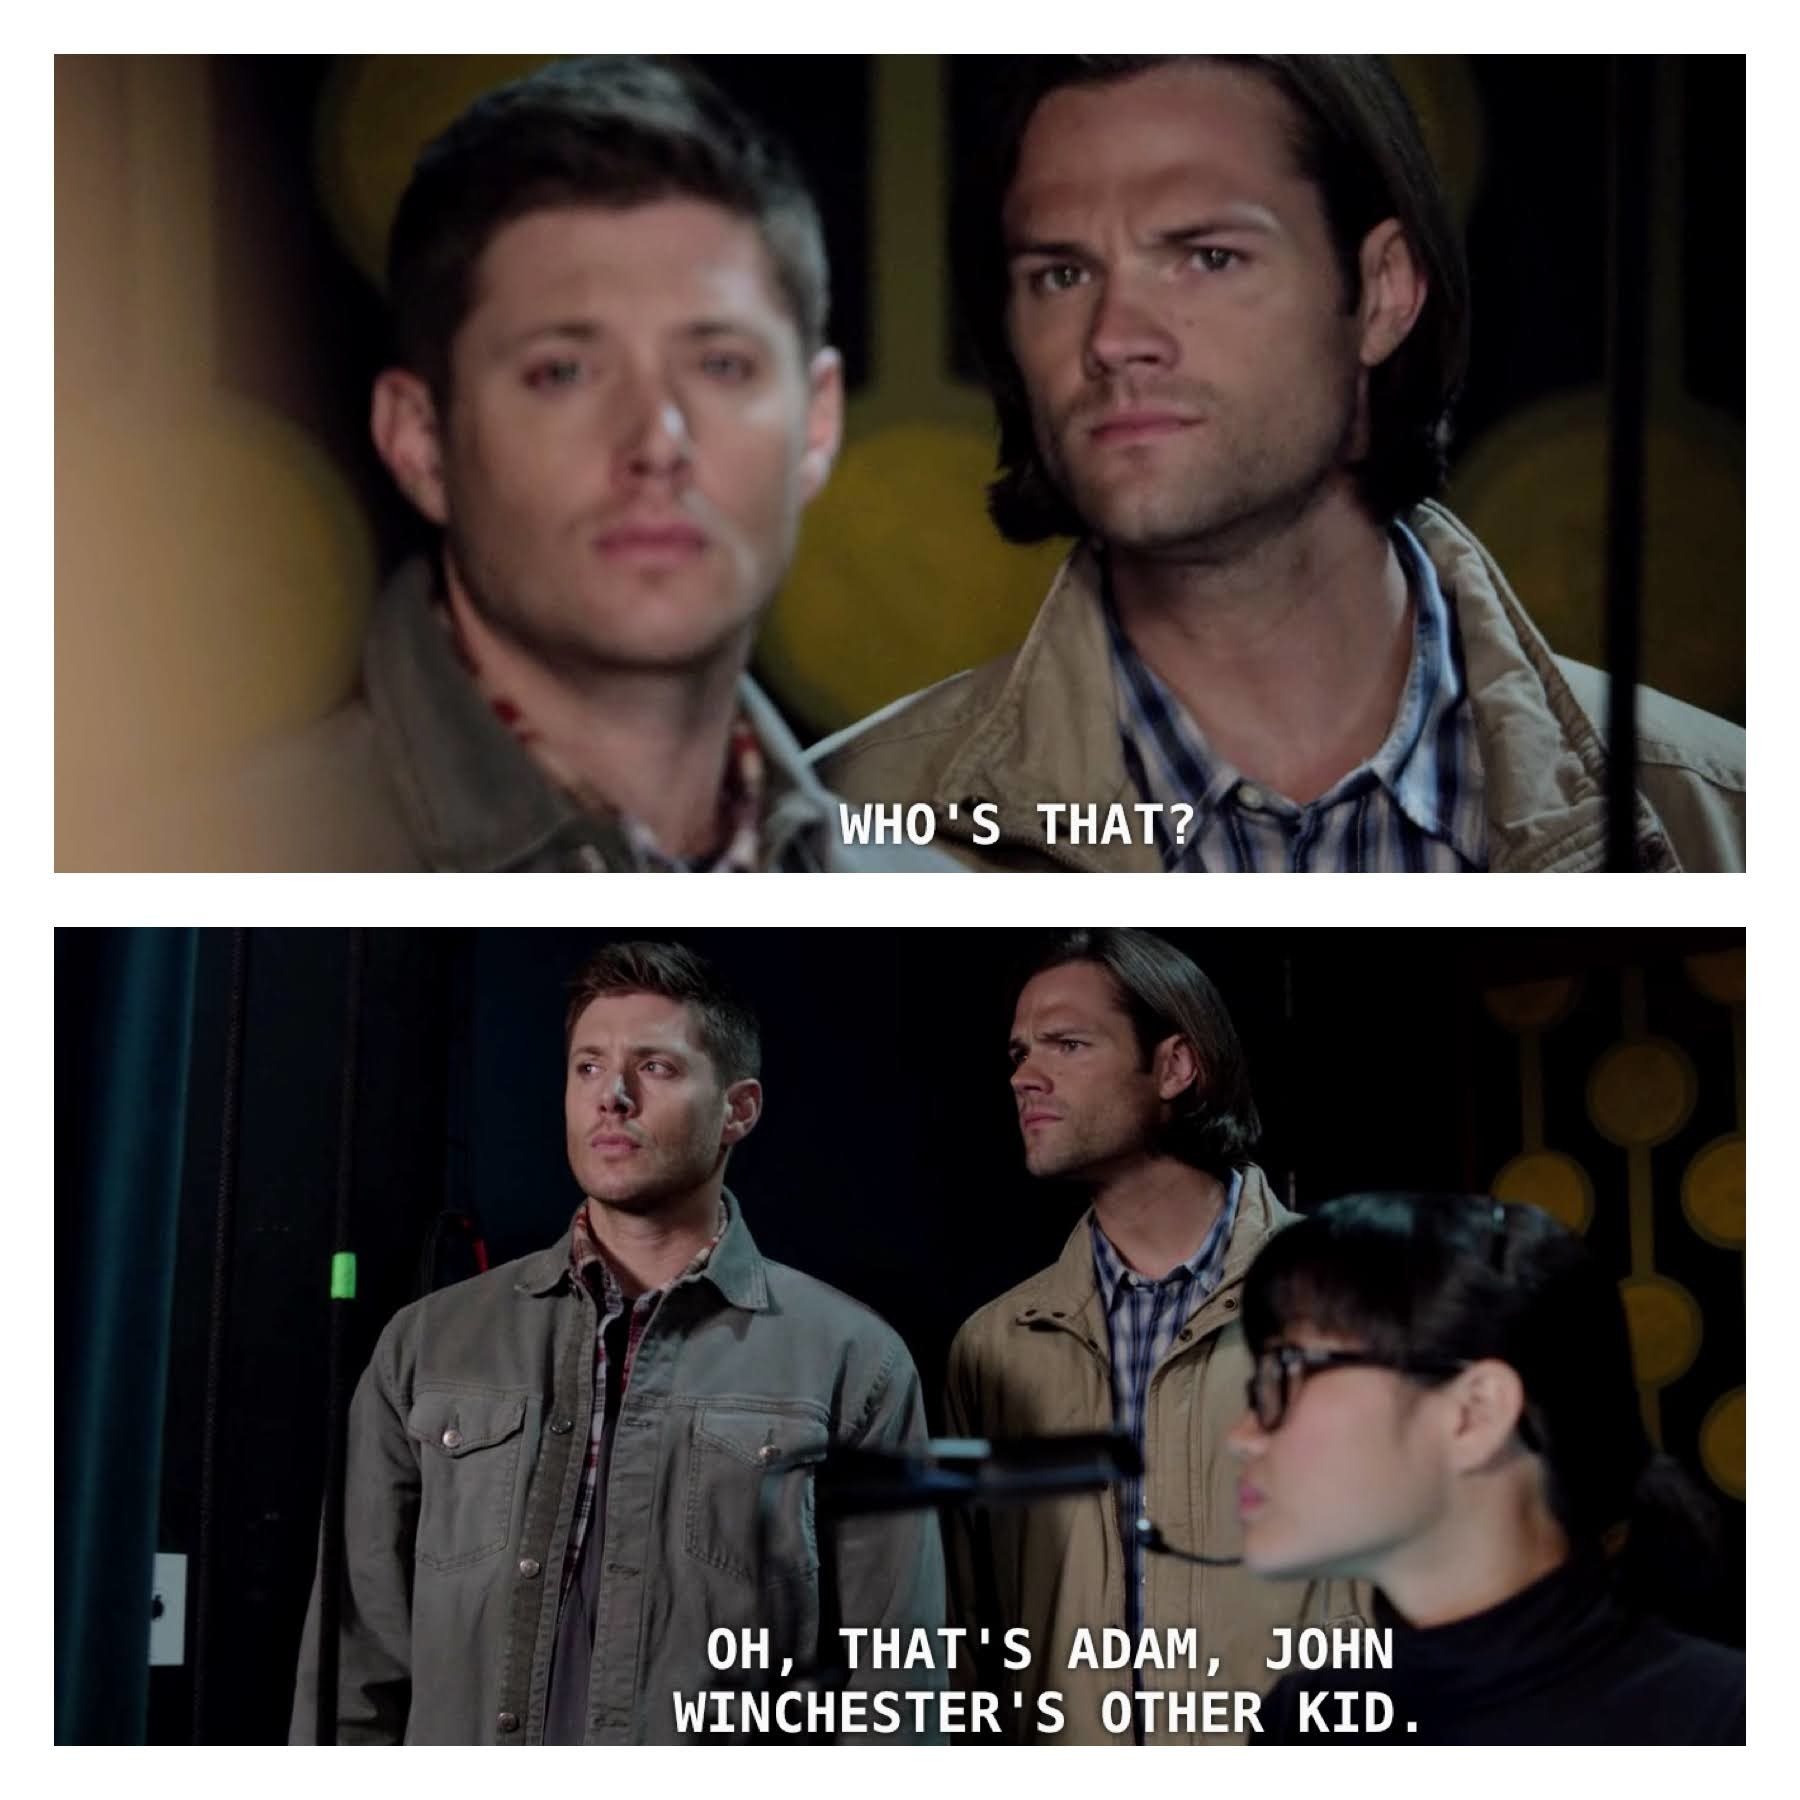 The Stage Manager tells the Winchesters that the character they're referring to is Adam from the Swan Song scene.